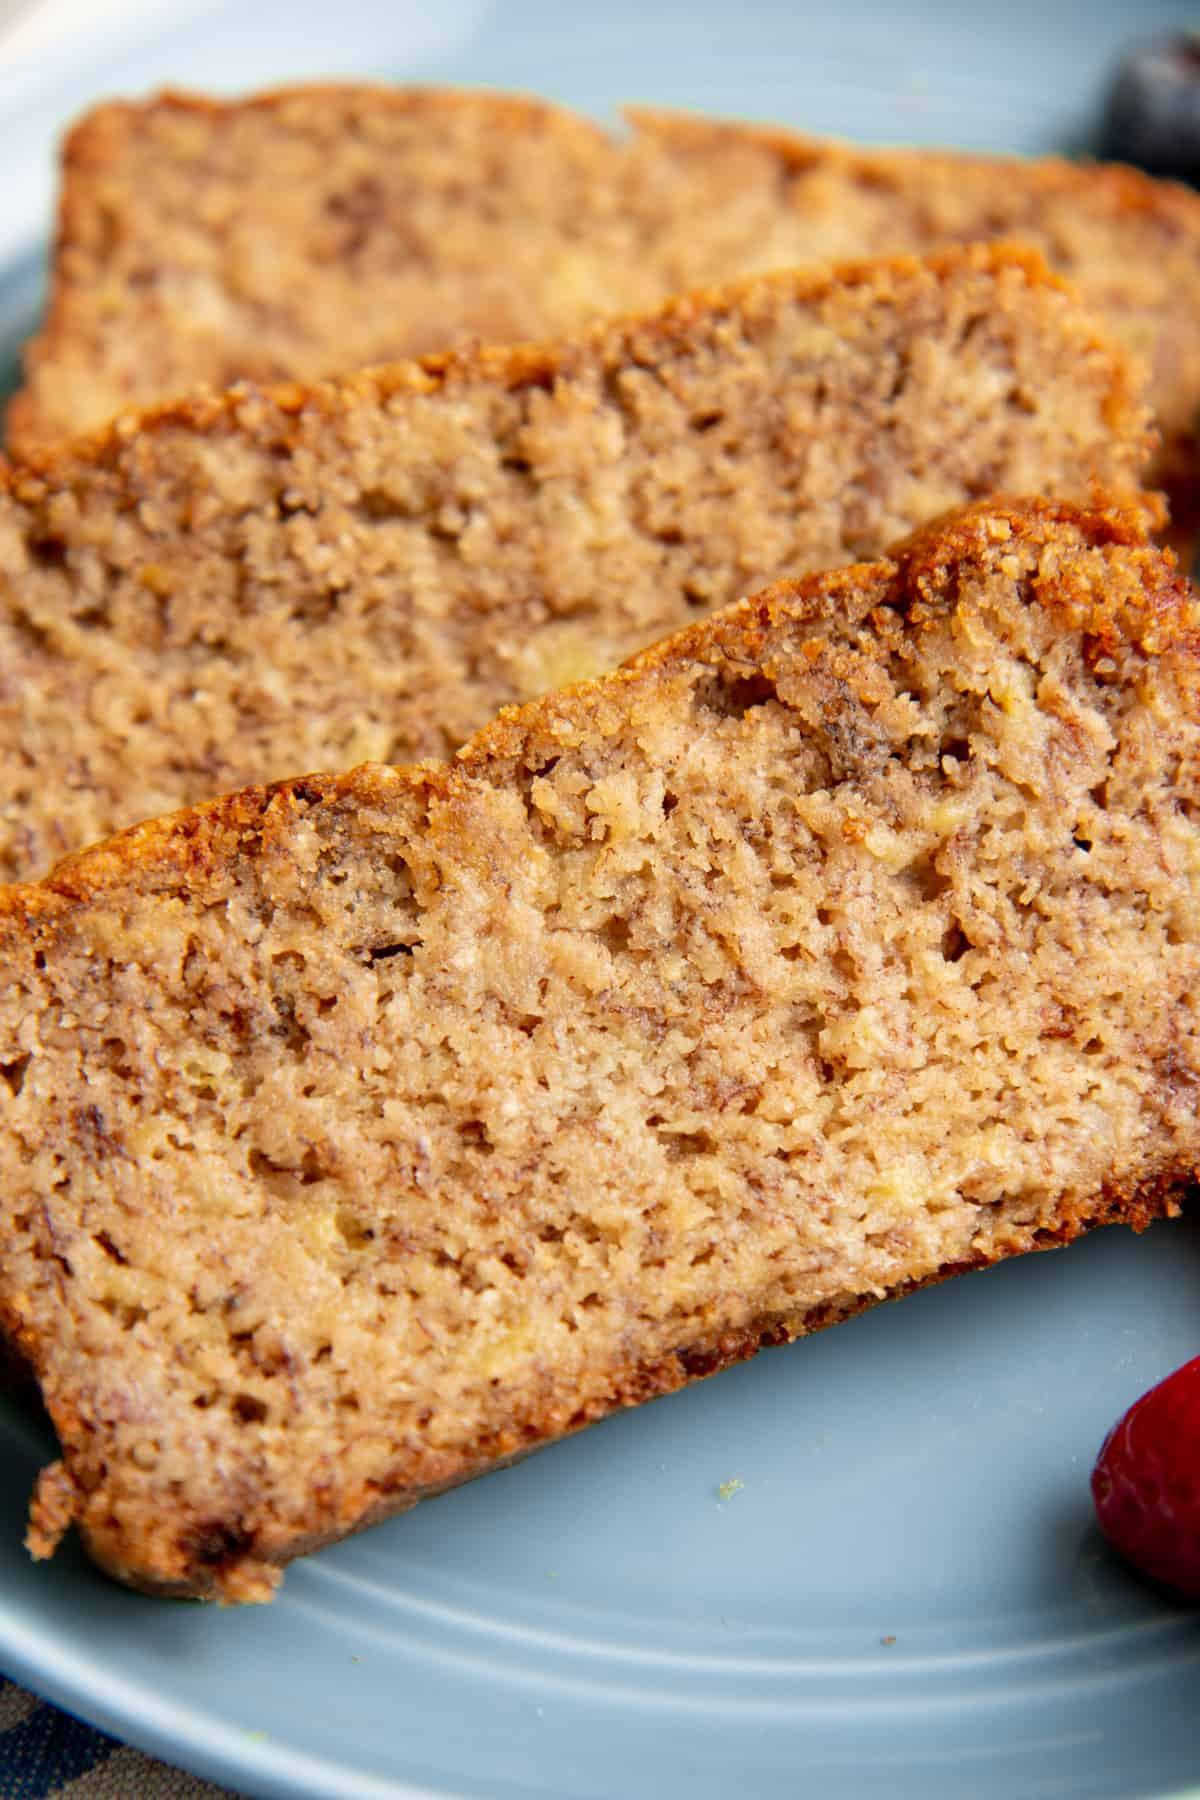 Close up on a slice of paleo banana bread.